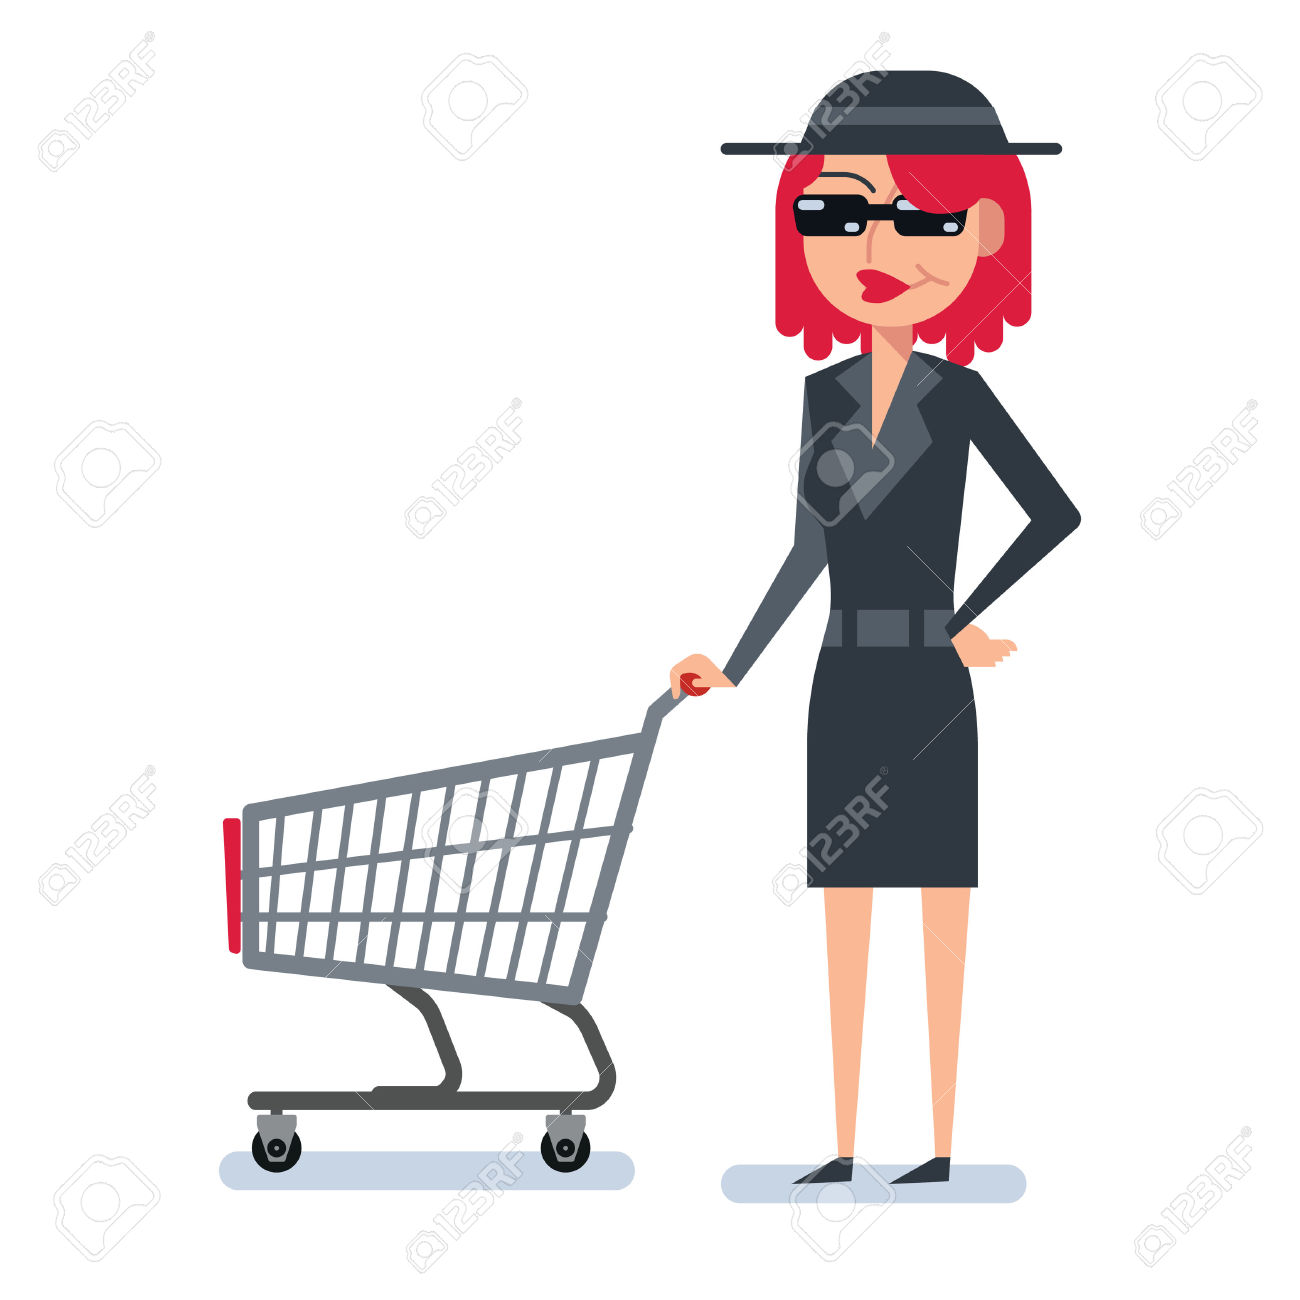 Mystery Shopper Woman In Spy Coat, Boots, Sunglasses And Hat.